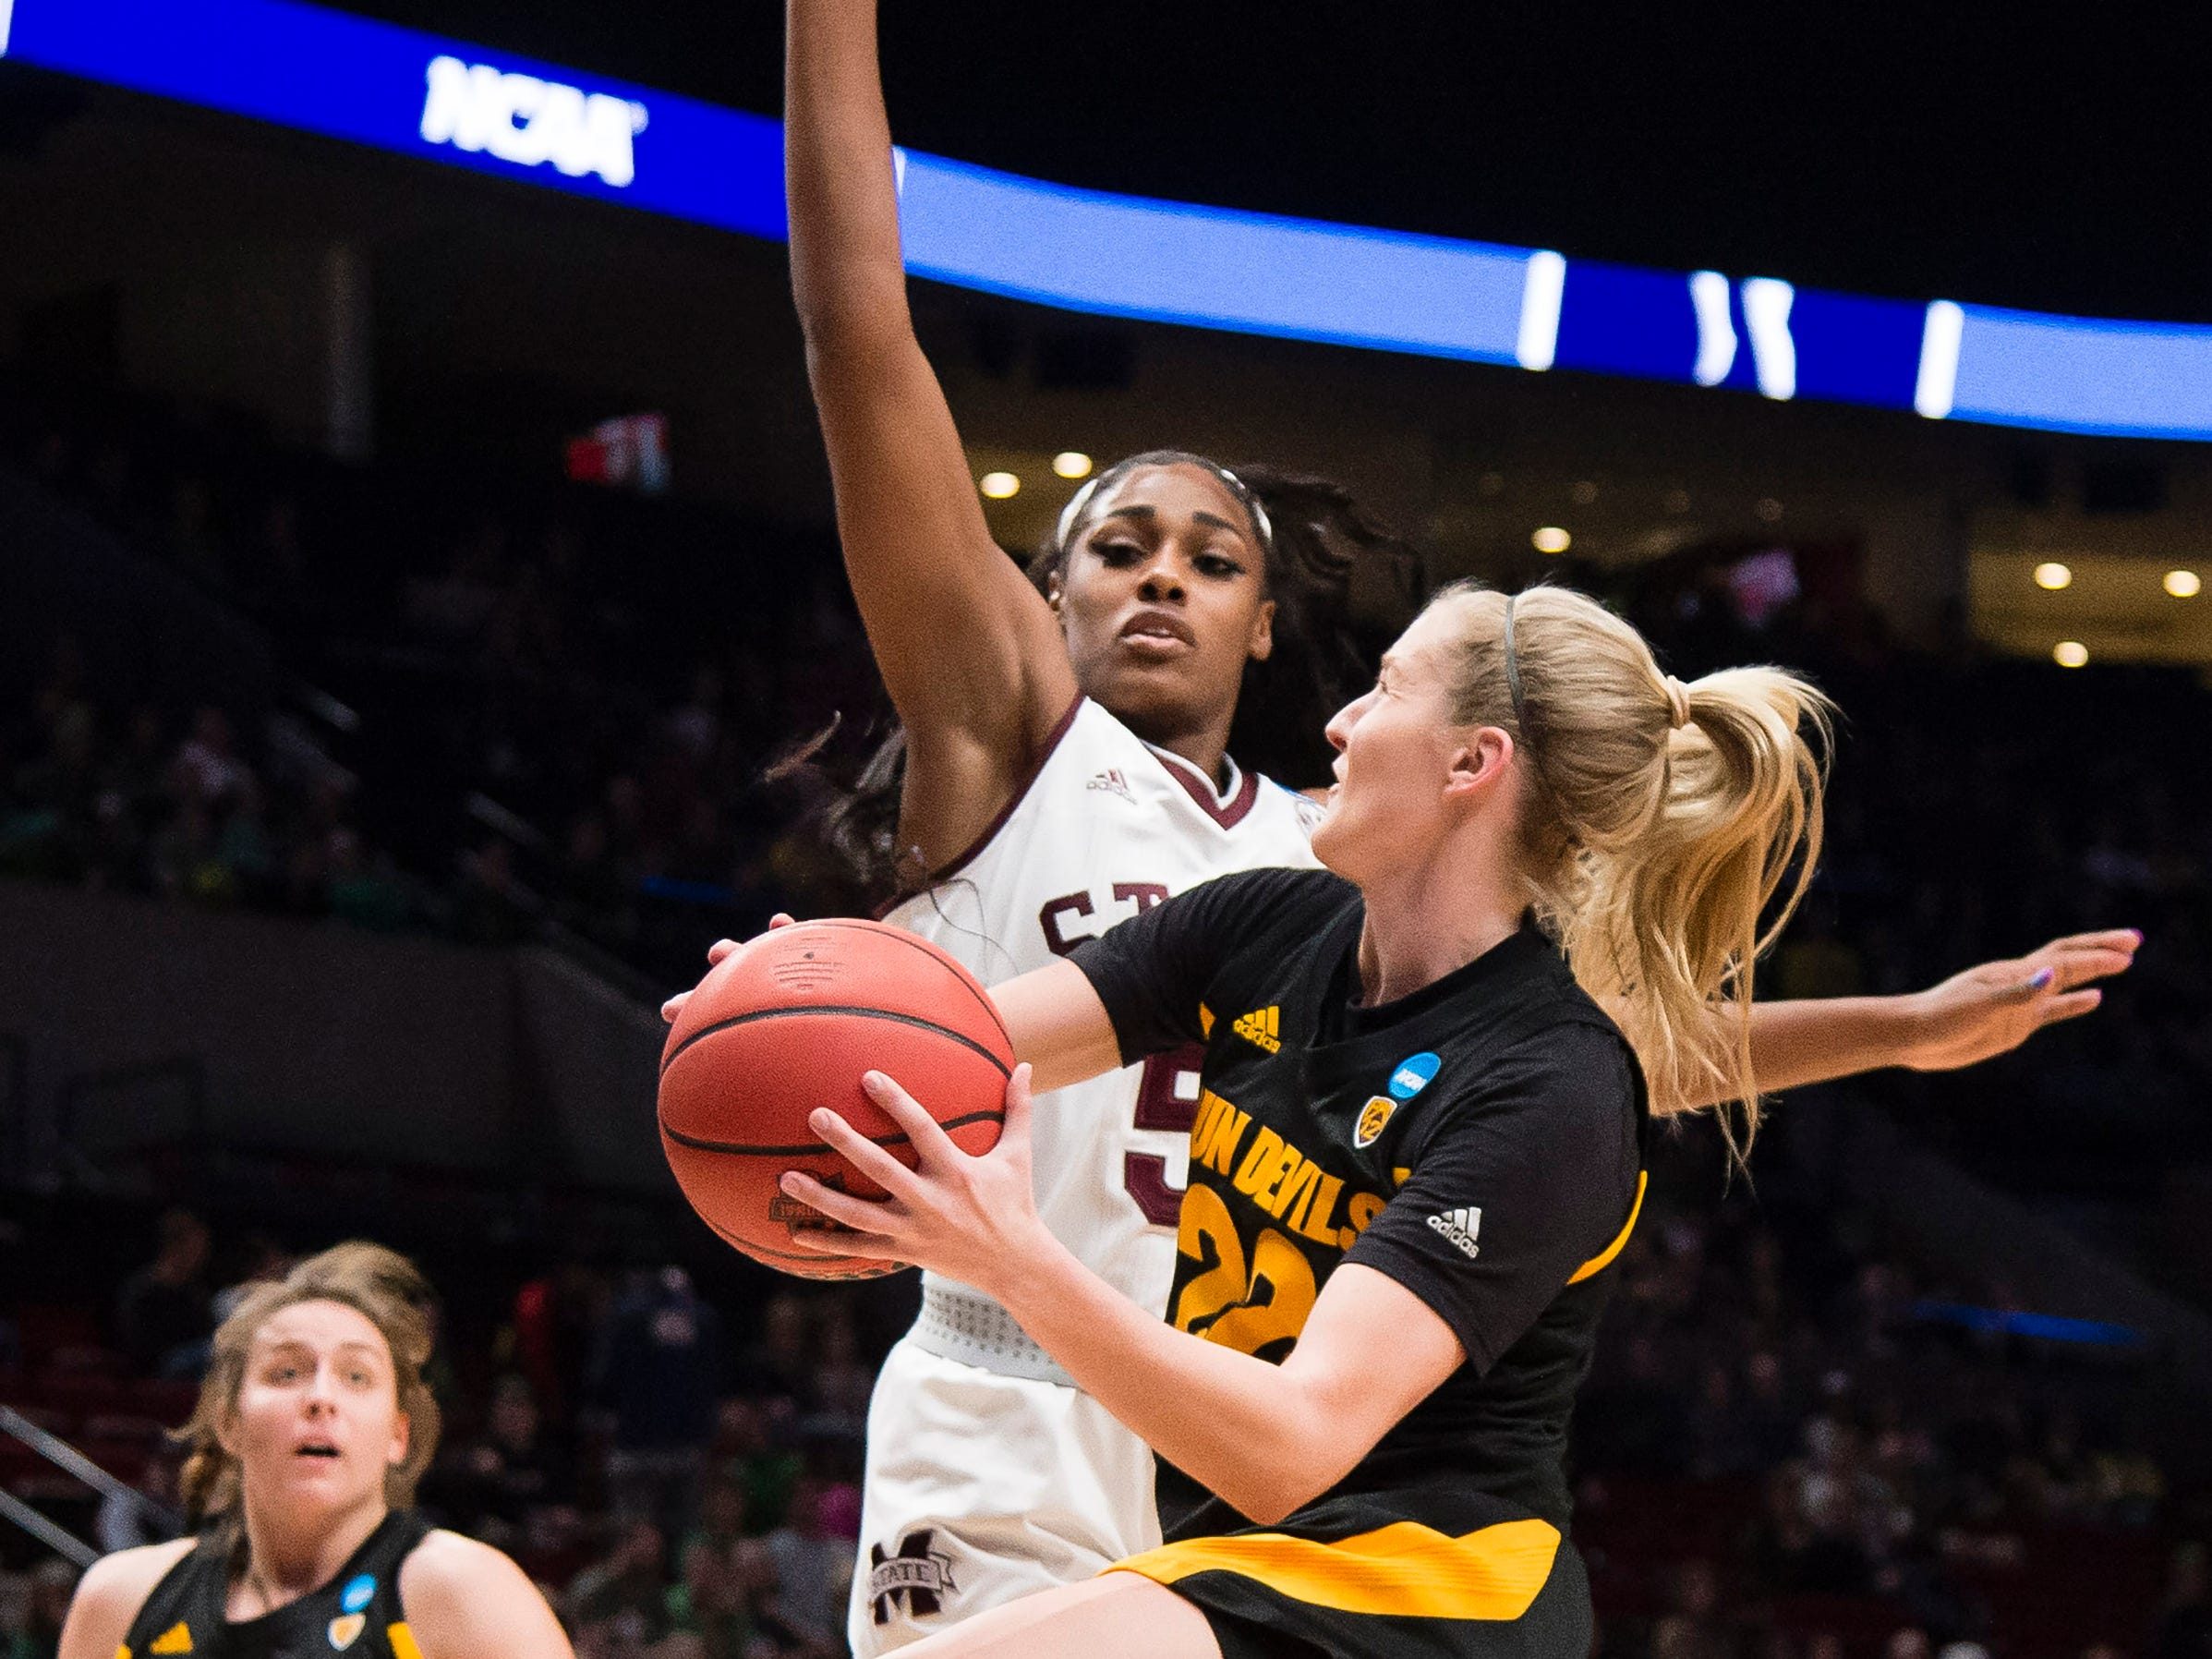 Mar 29, 2019; Portland, OR, USA; Arizona State Sun Devils guard Courtney Ekmark (22) drives to the basket against Mississippi State Bulldogs forward Anriel Howard (5) during the first half in the semifinals of the Portland regional in the women's 2019 NCAA Tournament at Moda Center.